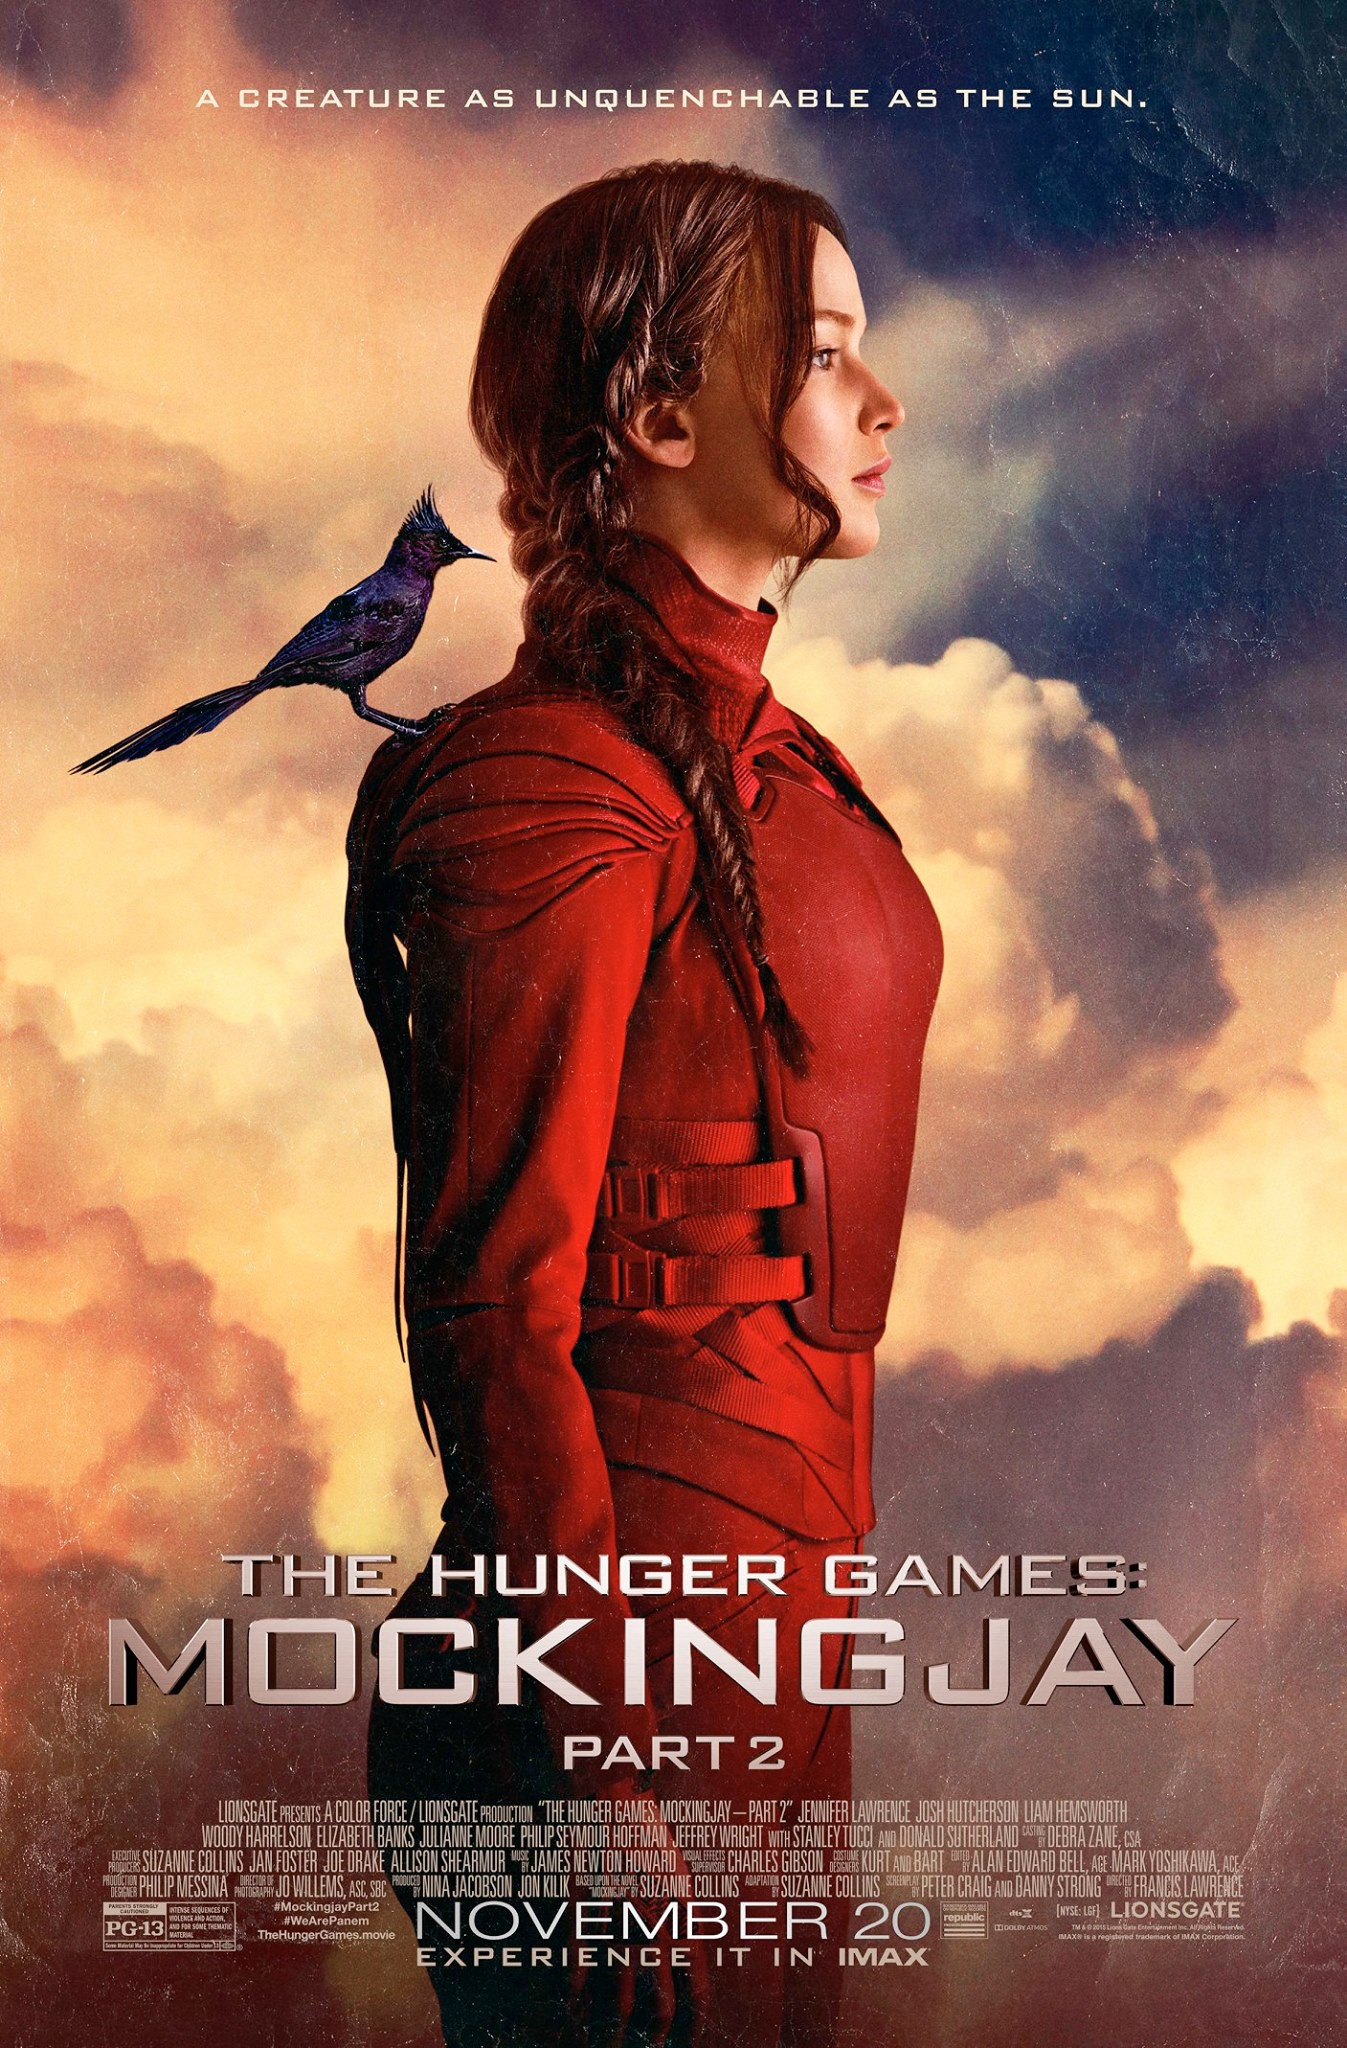 The Hunger Games Mockingjay - Part 2-16Setembro2015 (8)